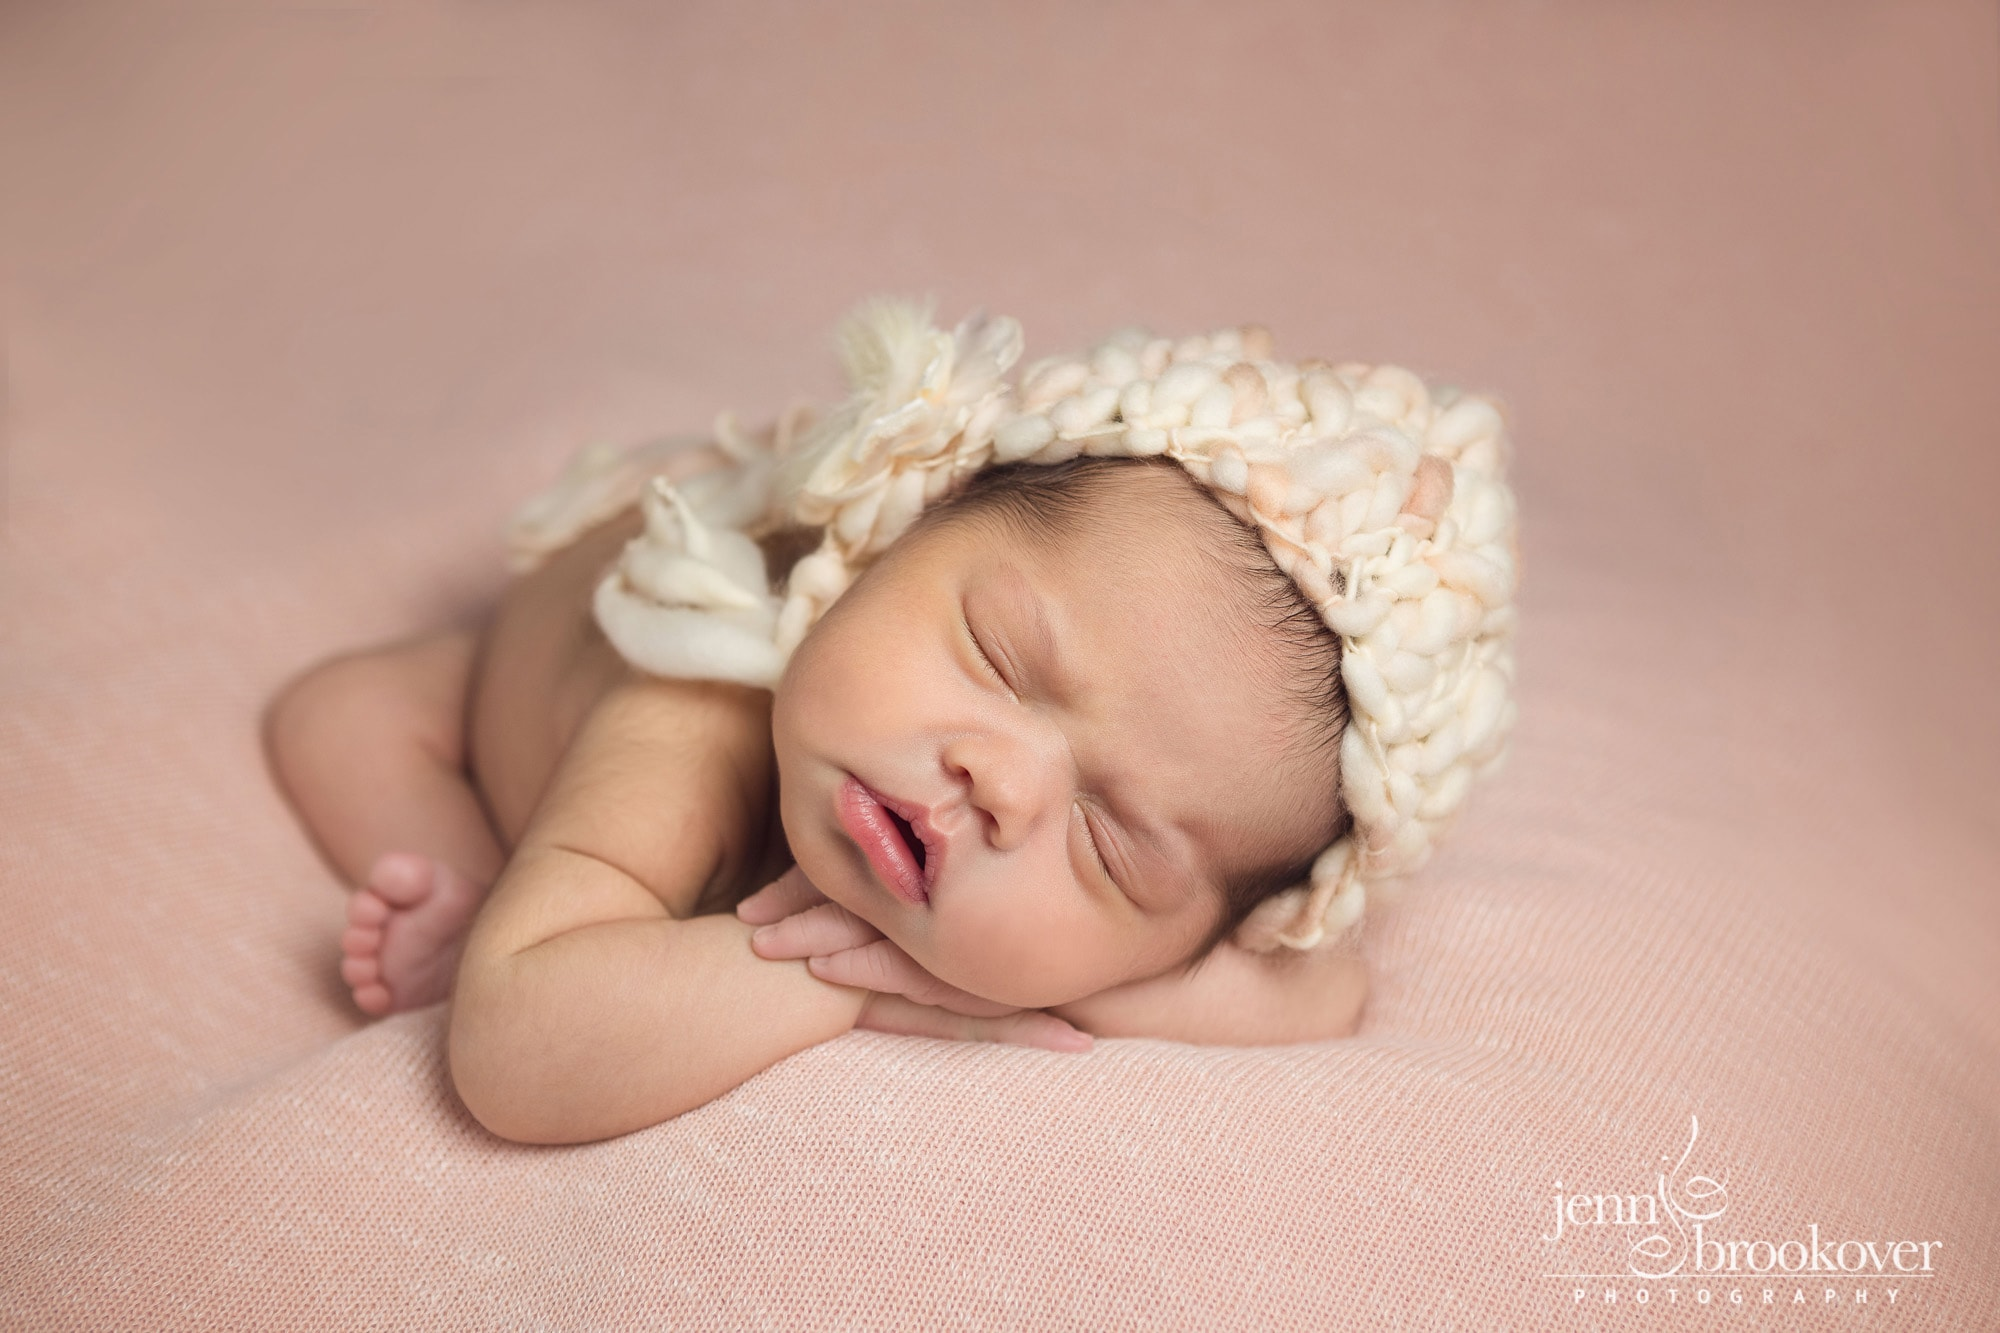 newborn portrait in peach and cream knitted hat, curled up during her session with Jenn Brookover Photography